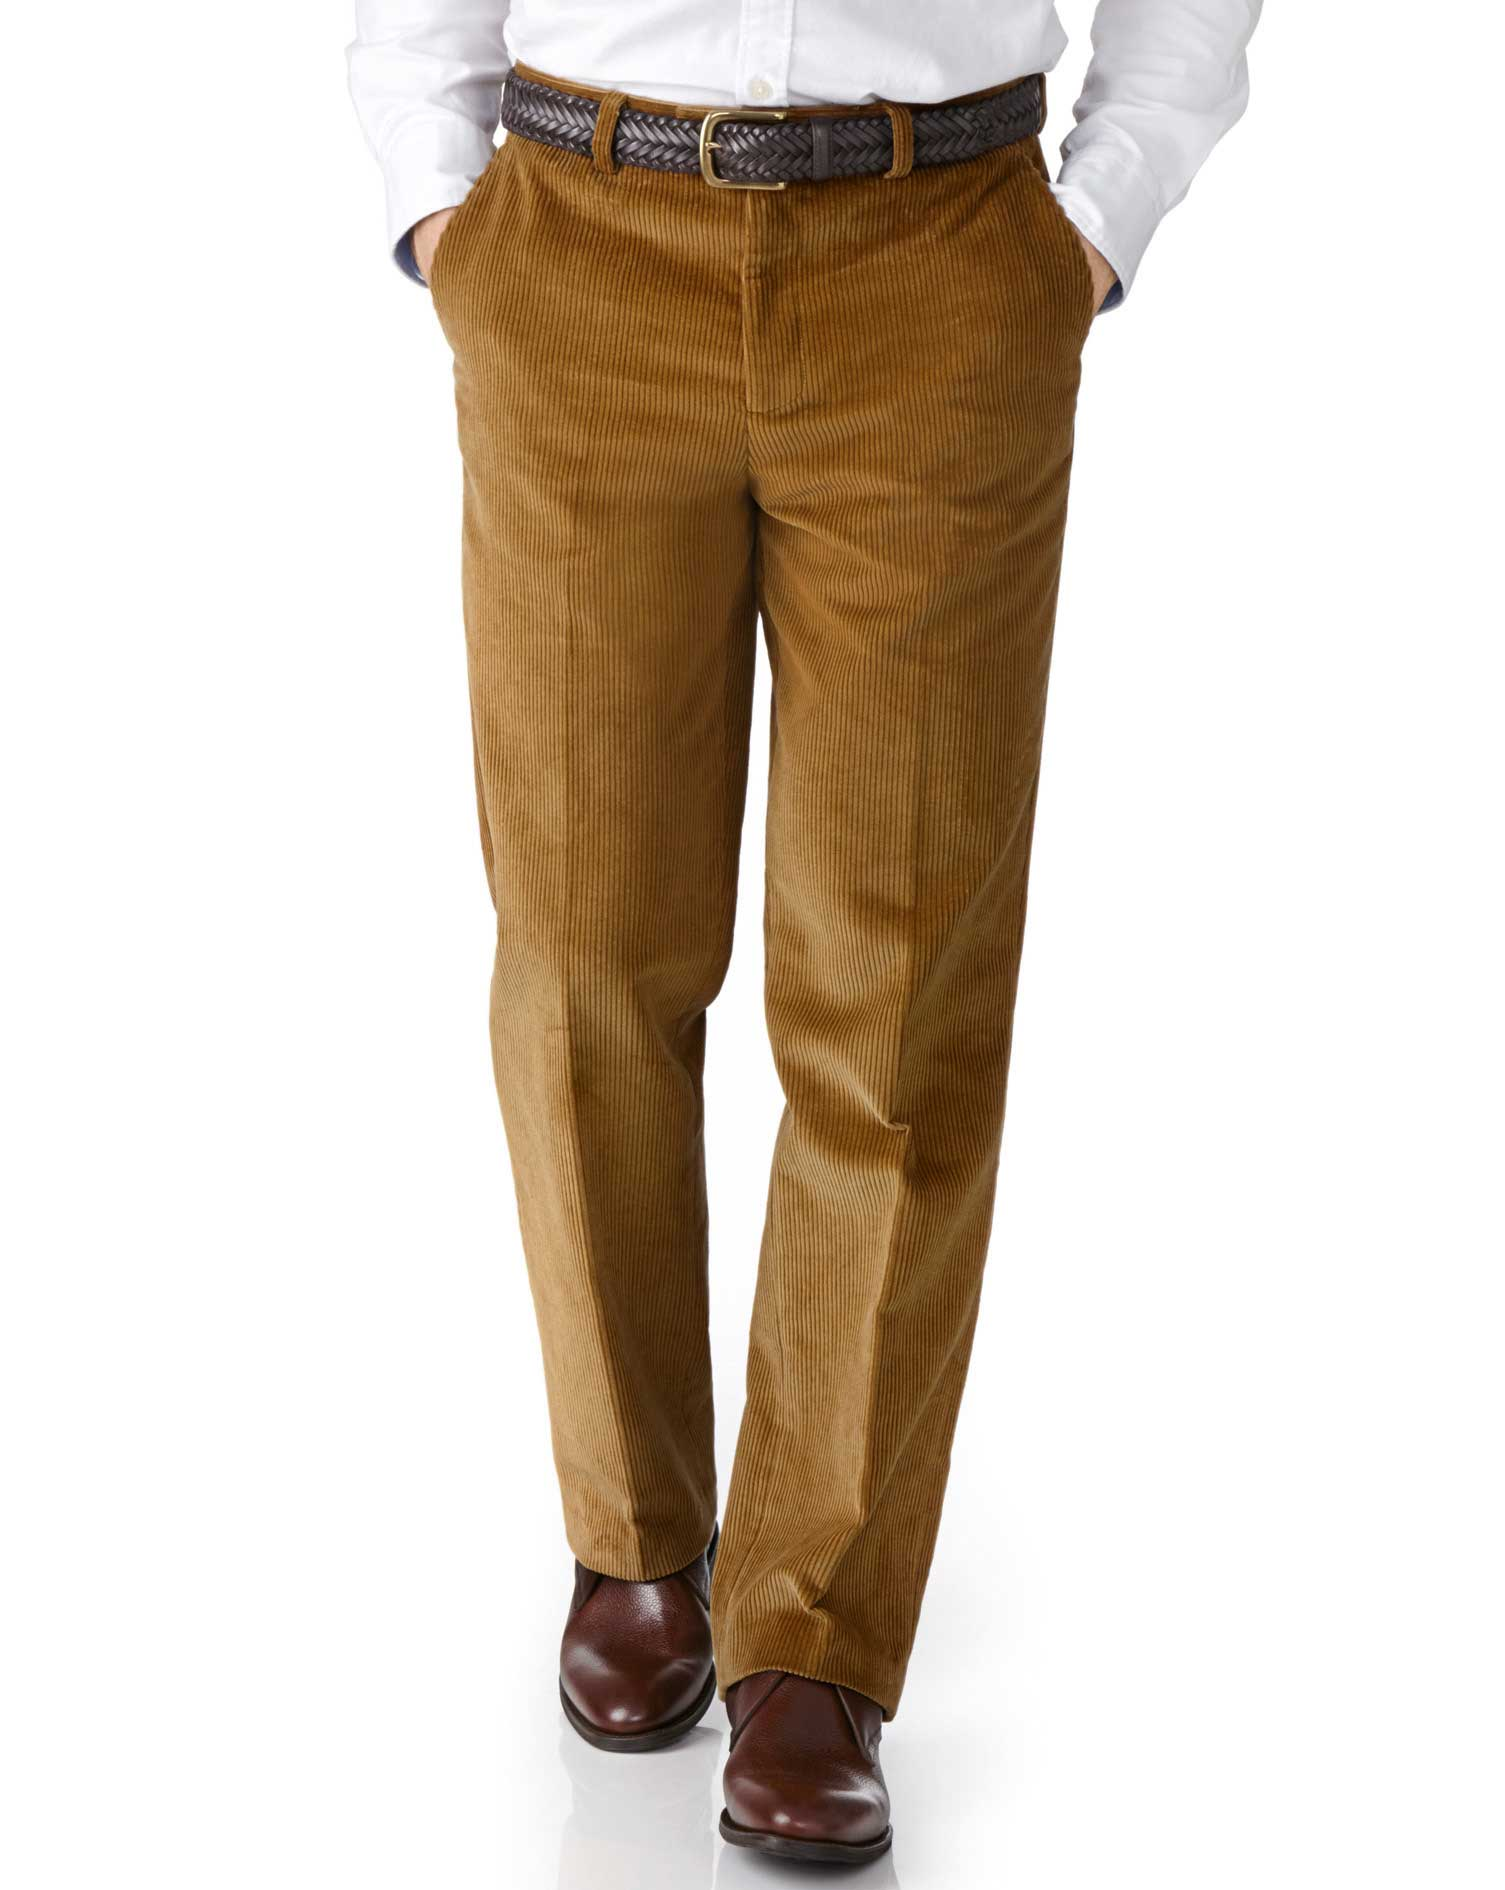 Yellow Classic Fit Jumbo Cord Trousers Size W36 L32 by Charles Tyrwhitt